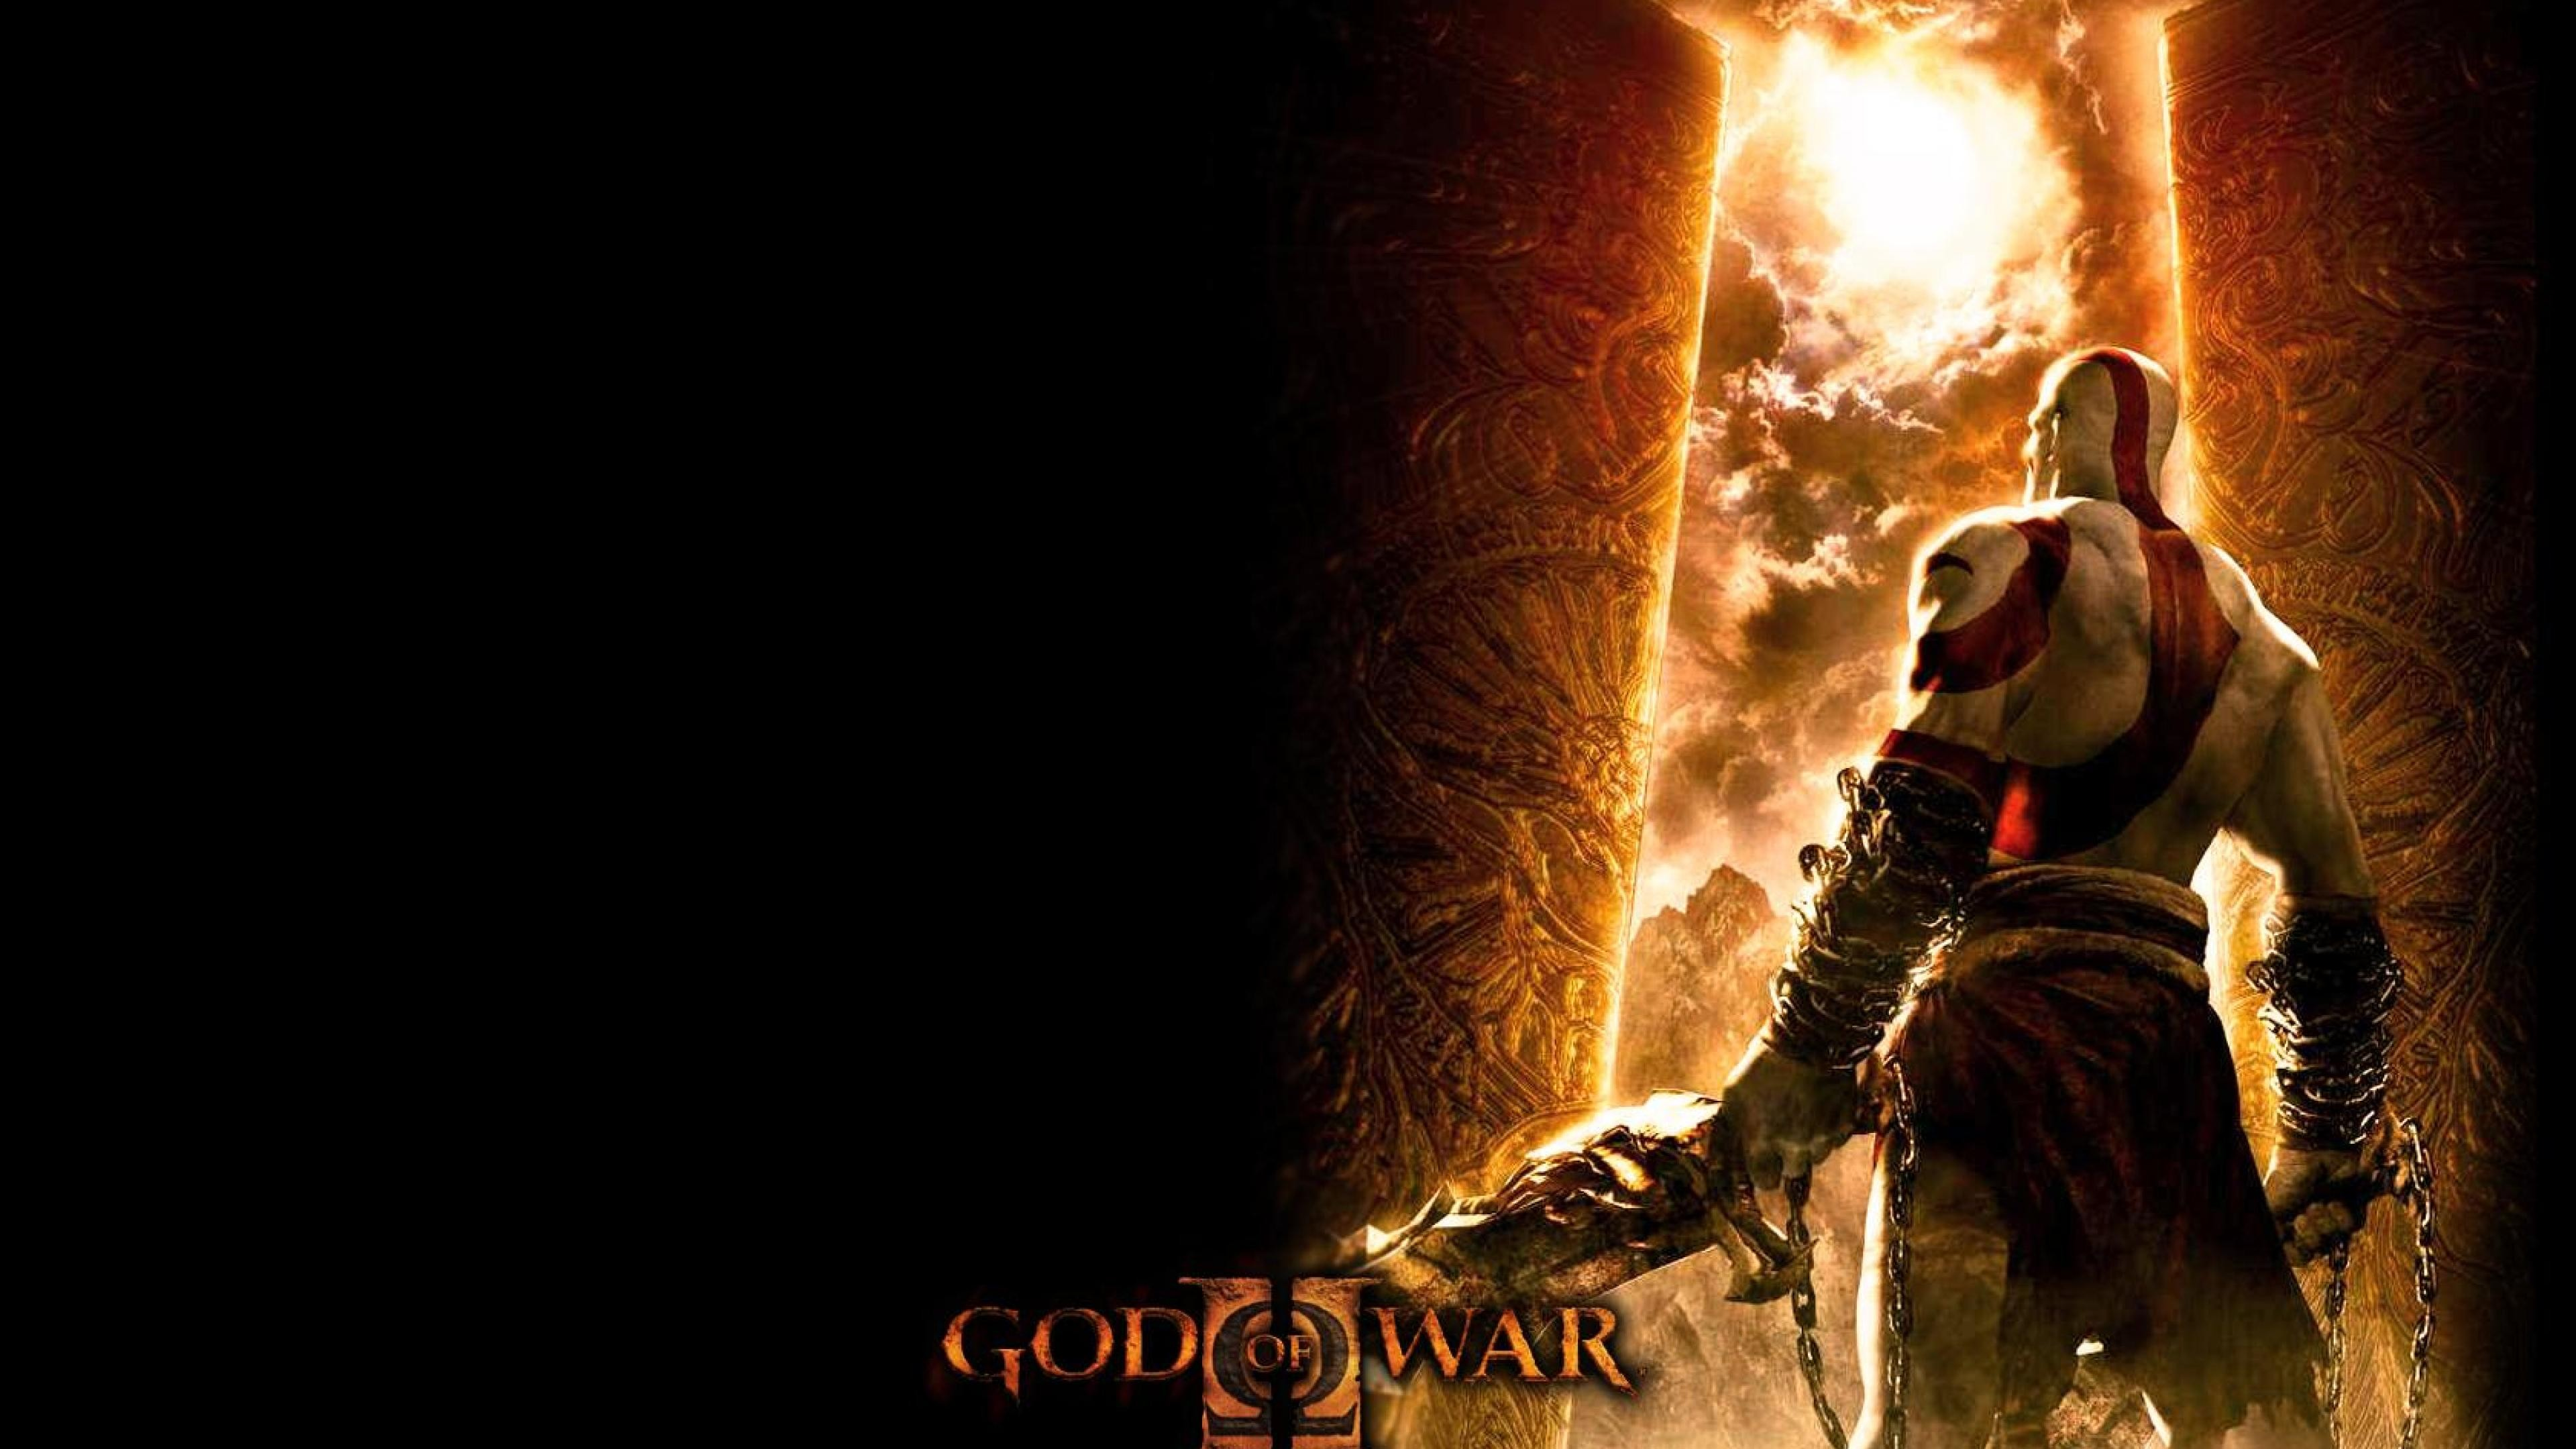 Wallpaper god of war 4k e3 2017 screenshot games 14341 - 4k wallpaper of god ...